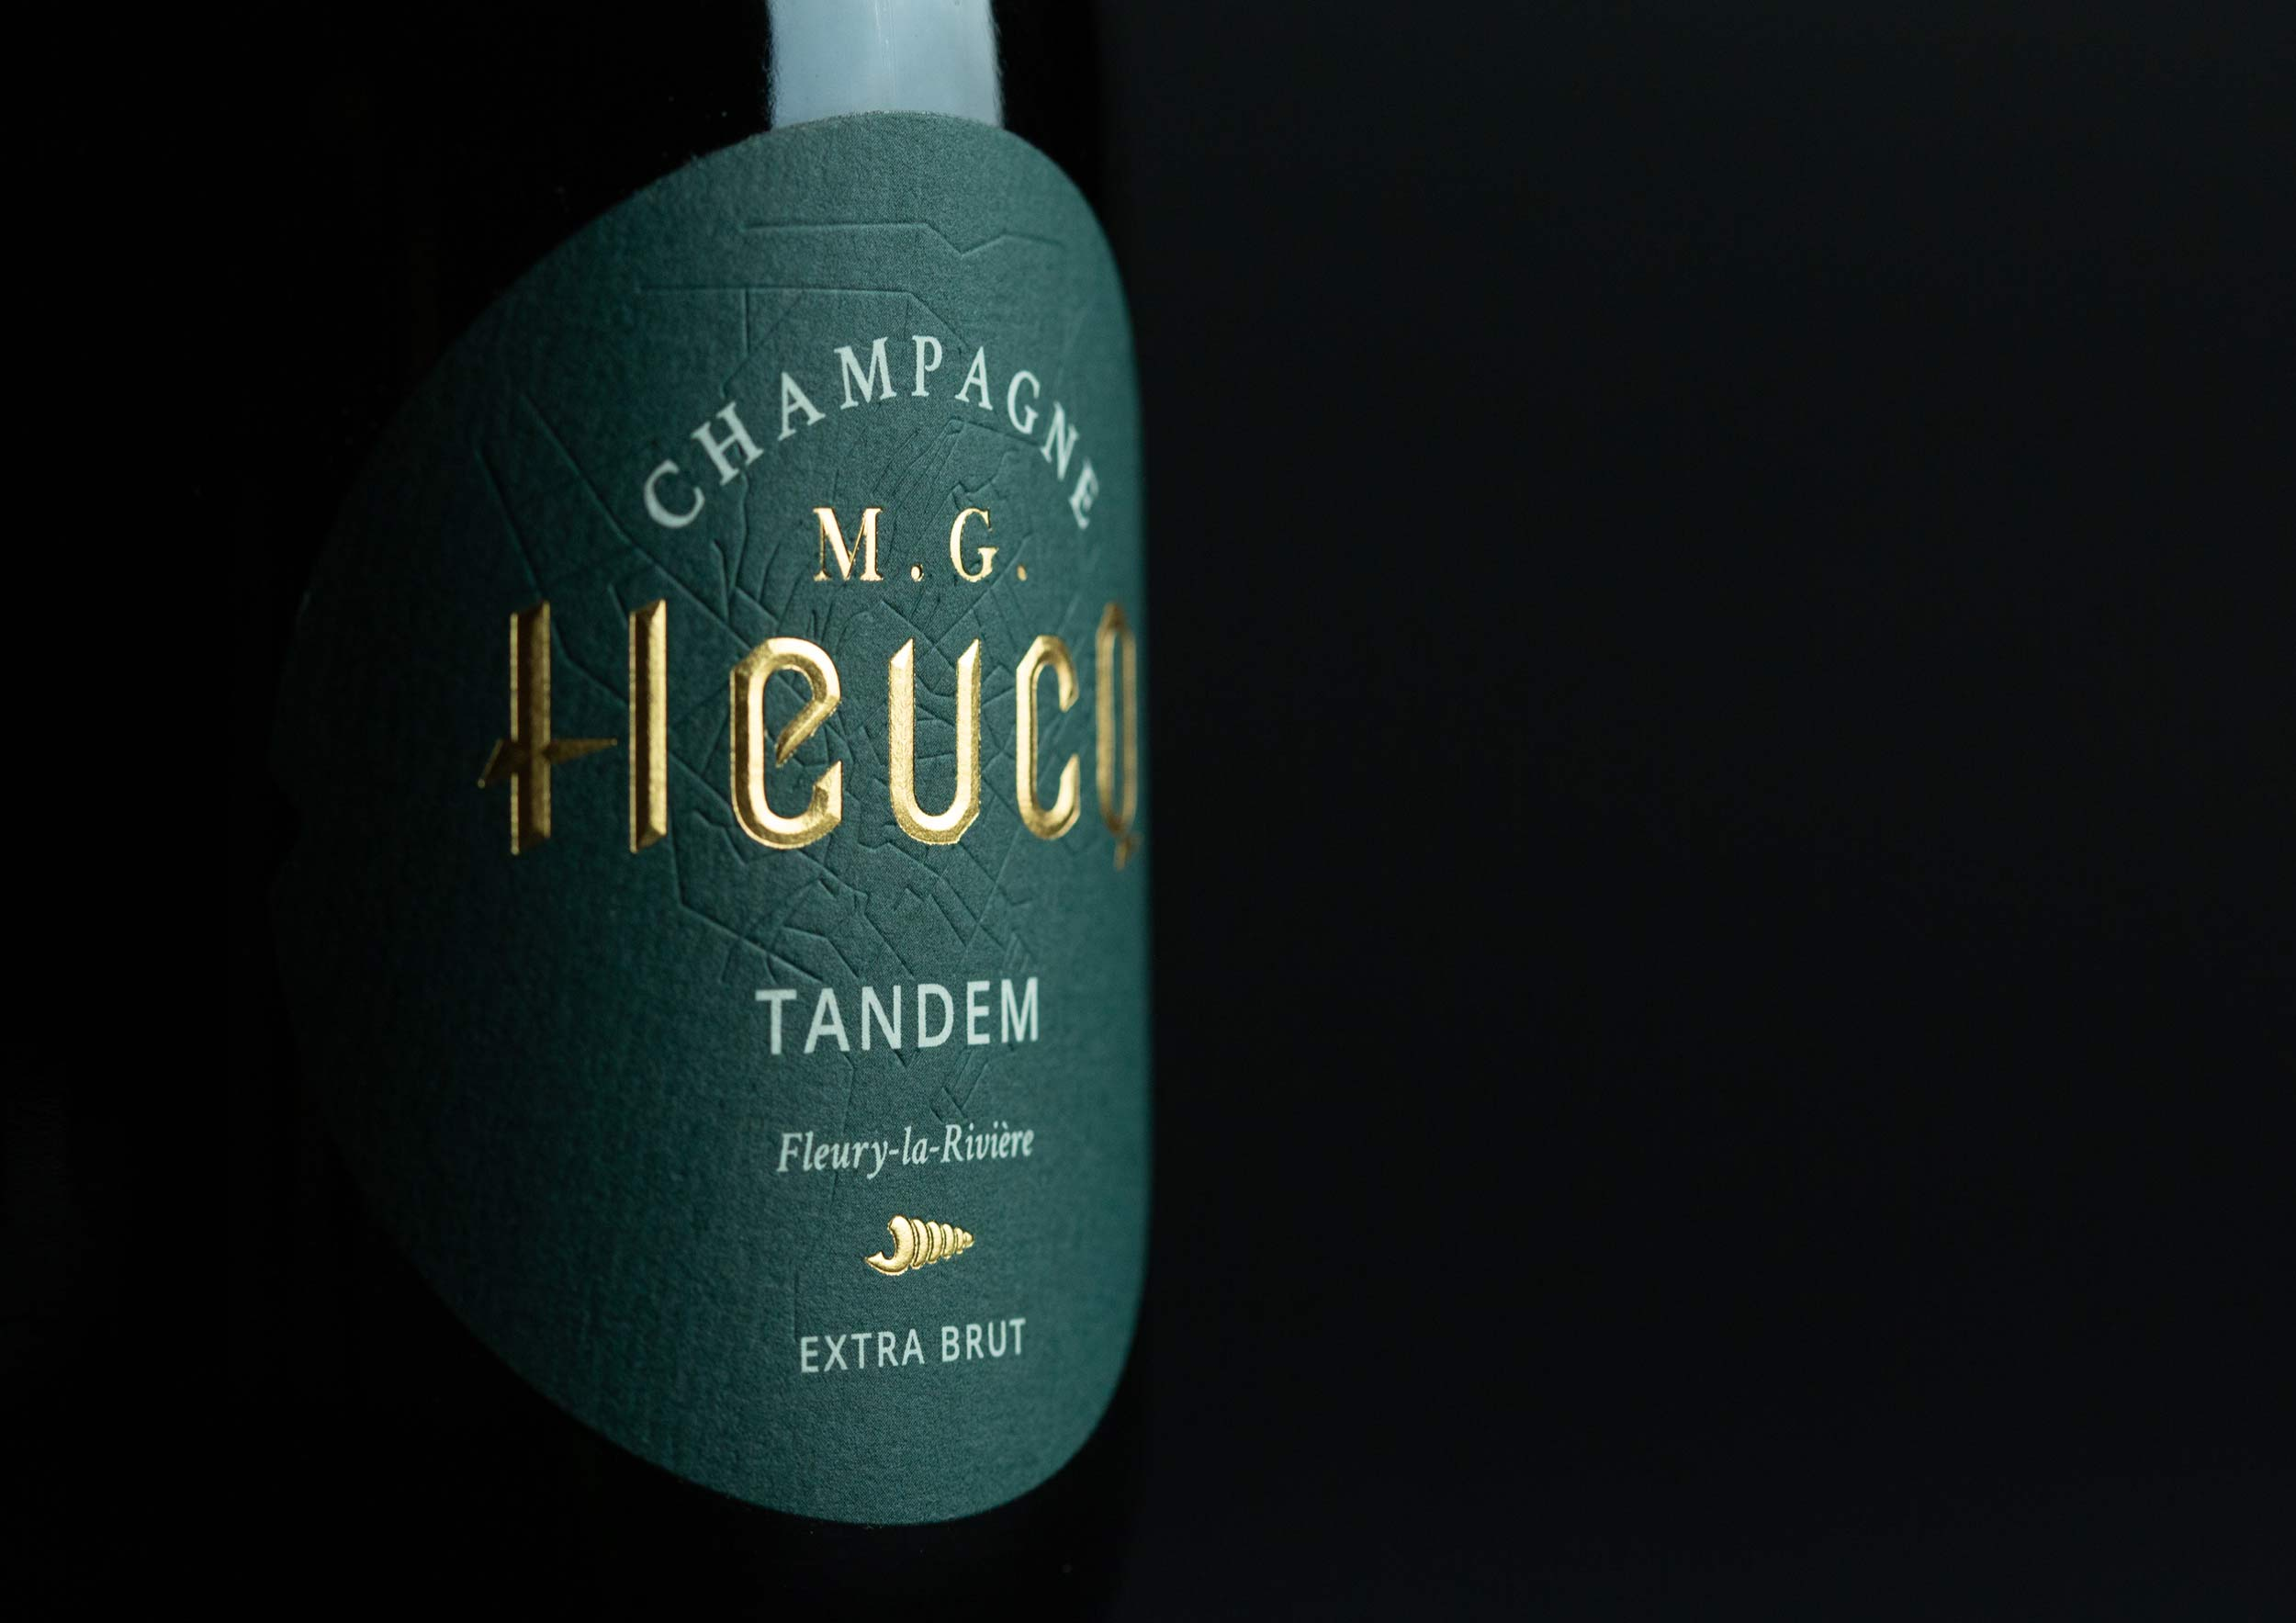 Studio Boam Creates Champagne M.G. Heucq New Bottle Design